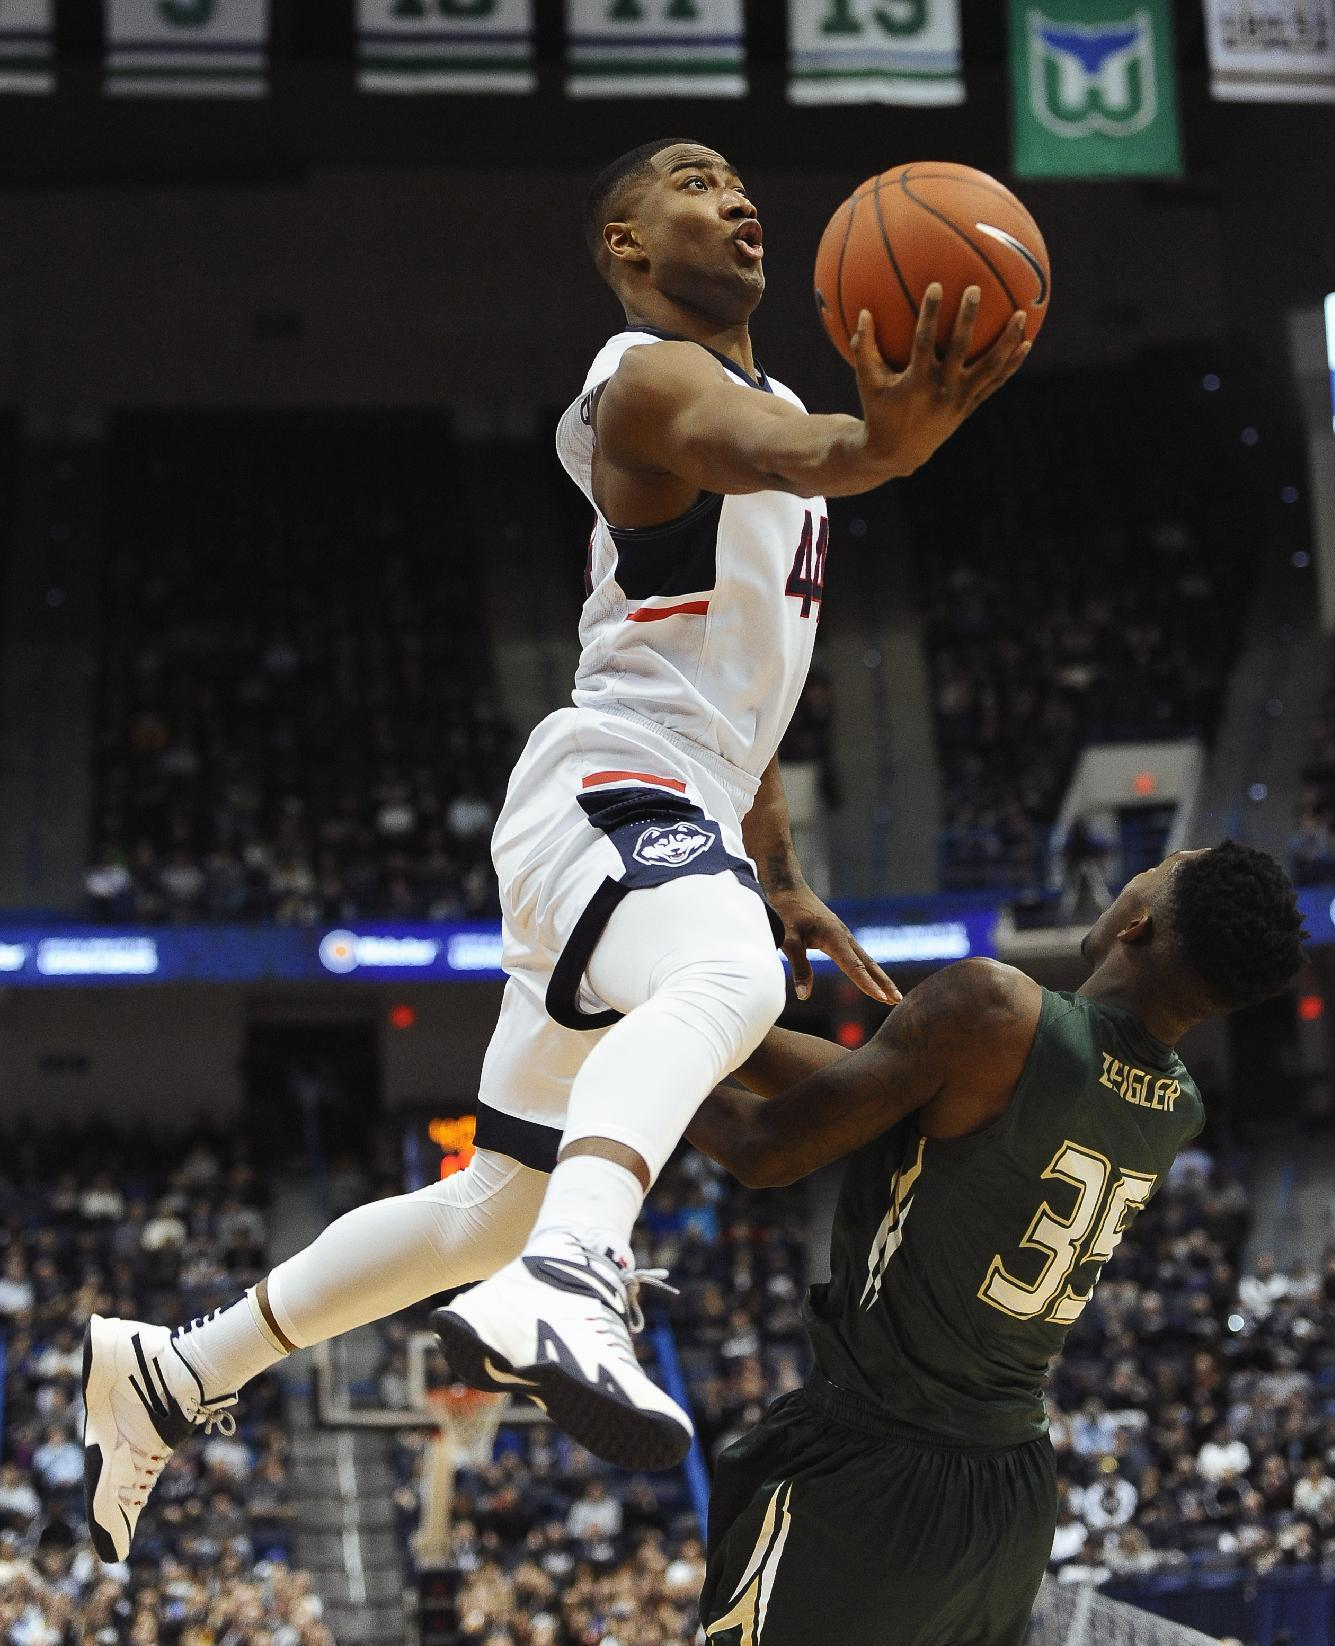 Boatright scores 28 as UConn beat USF 66-53